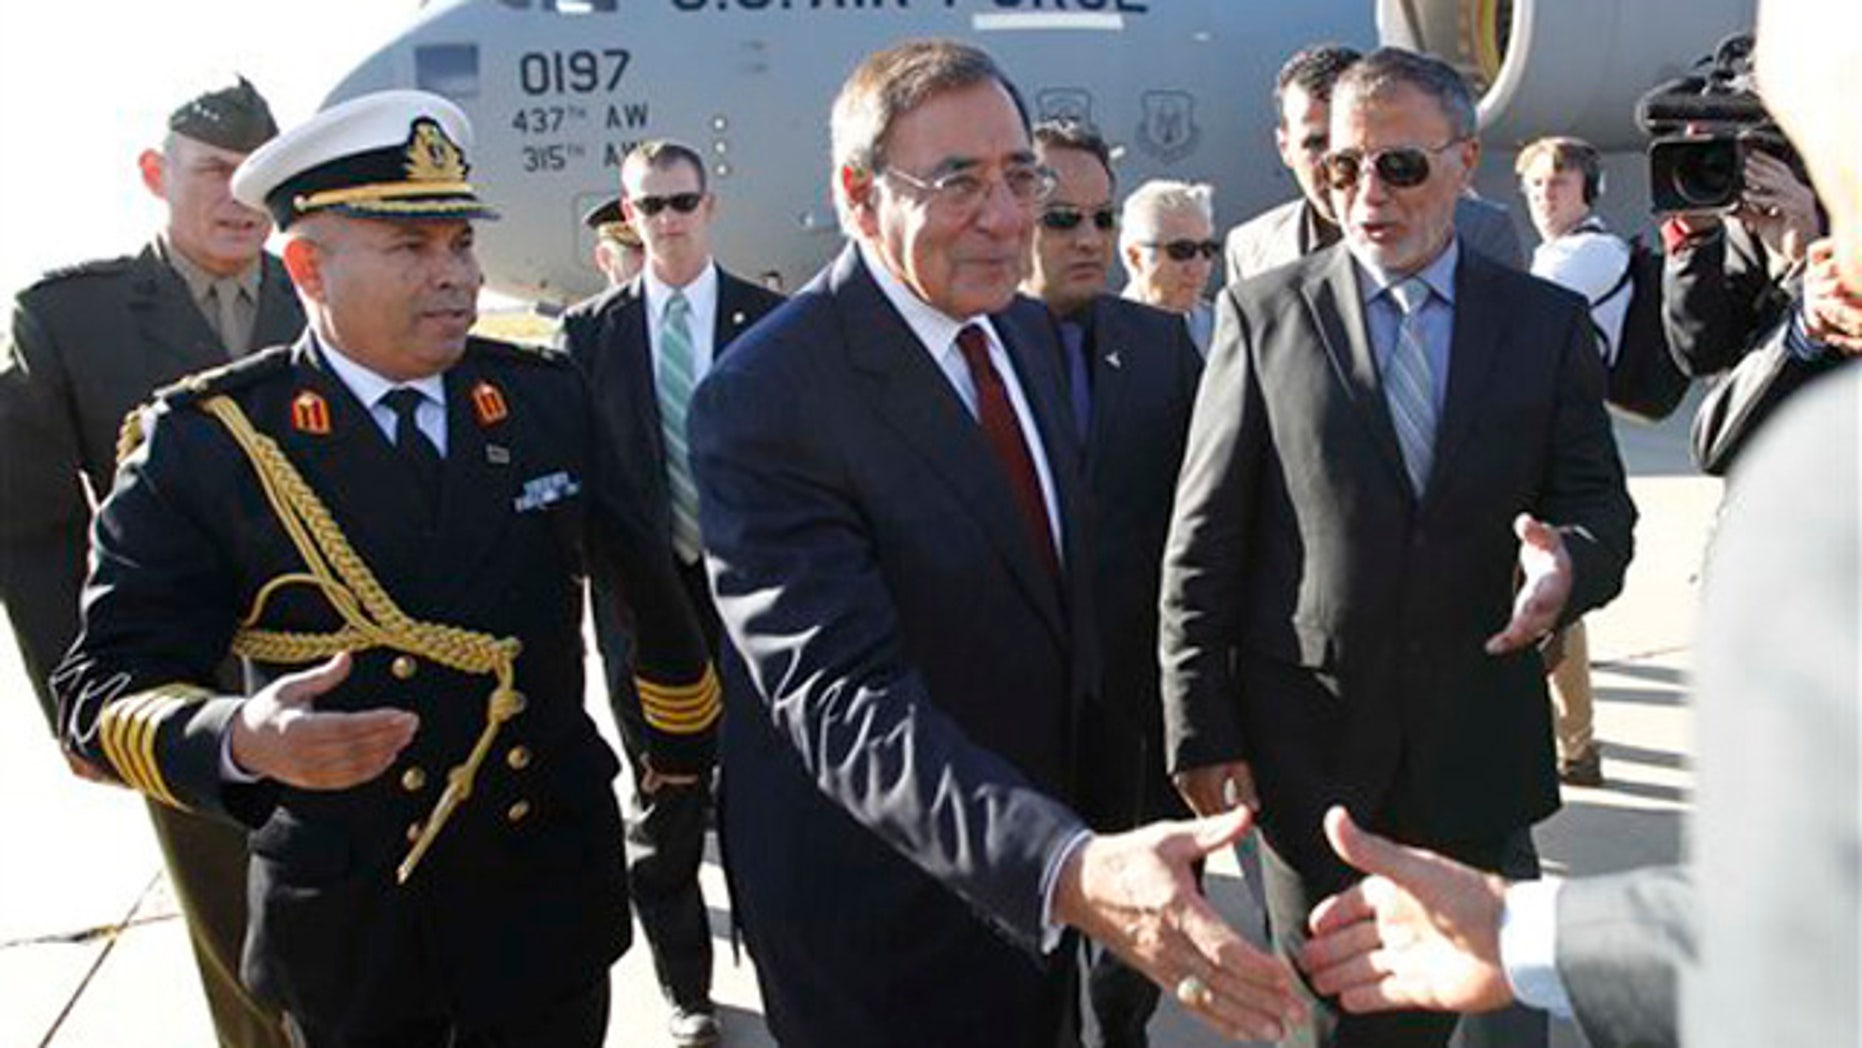 Dec. 17, 2011: Defense Secretary Leon Panetta greets officials in Tripoli, Libya.